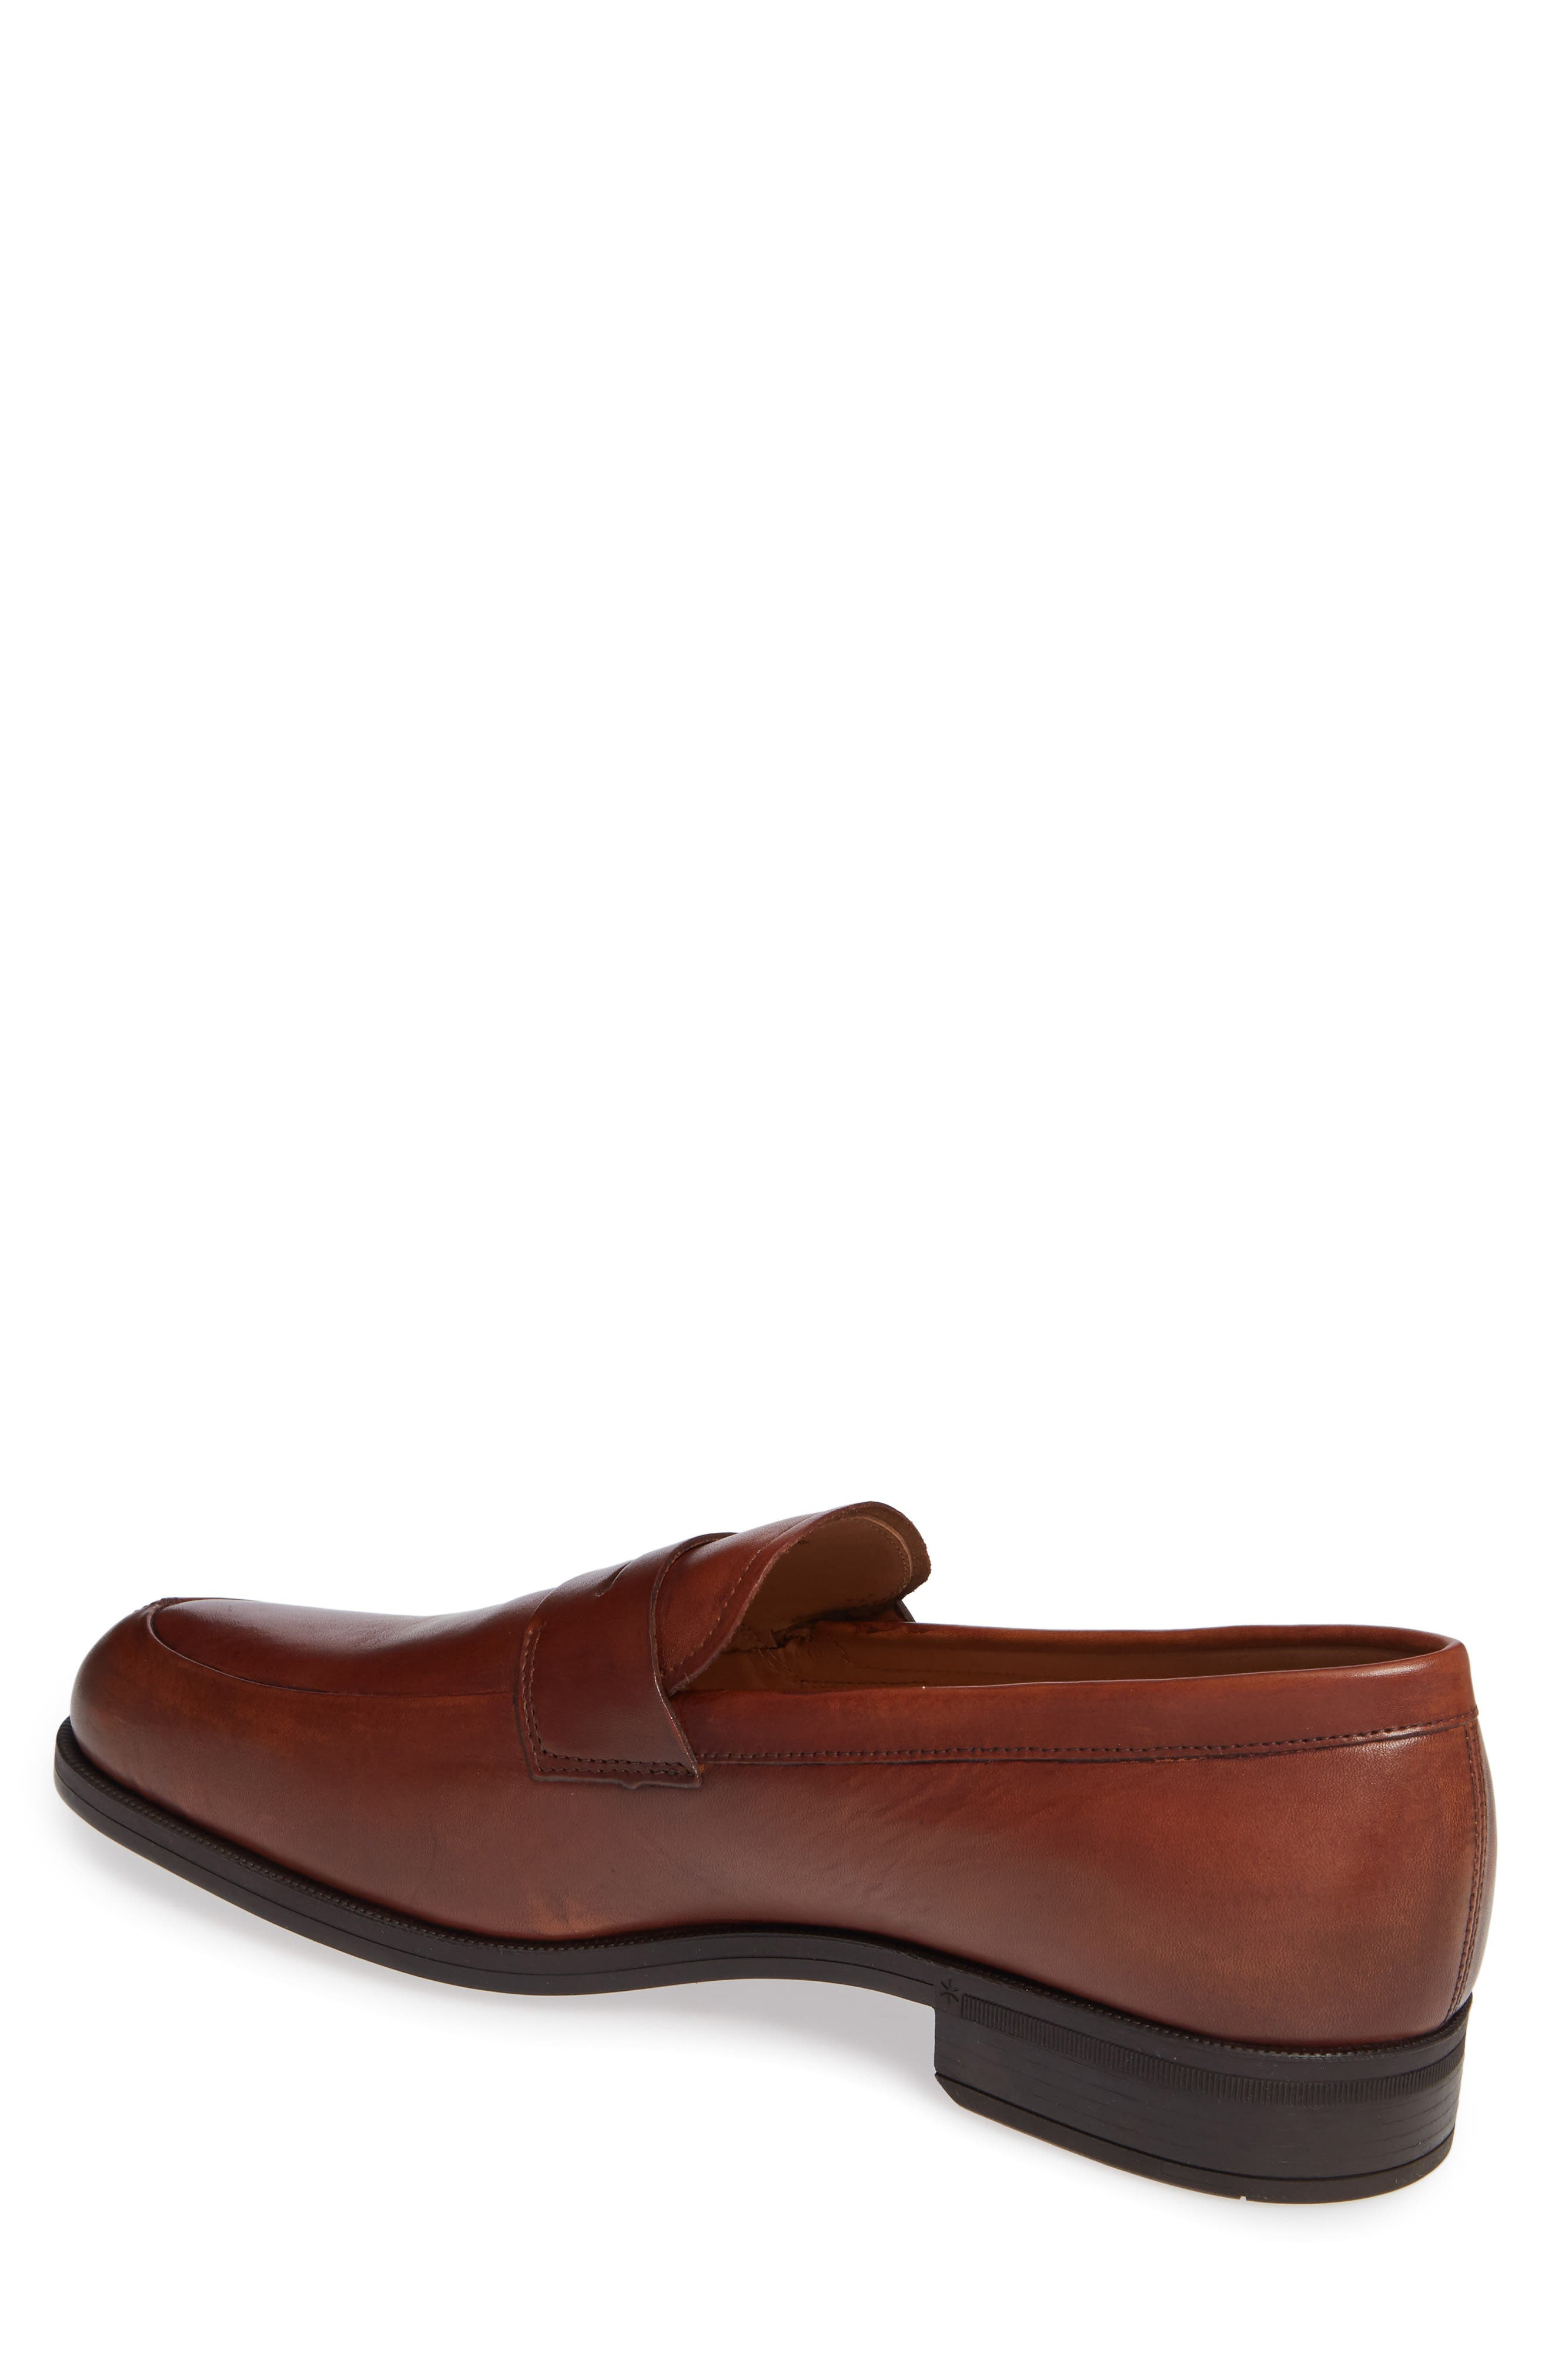 Iggi Penny Loafer,                             Alternate thumbnail 2, color,                             COGNAC LEATHER